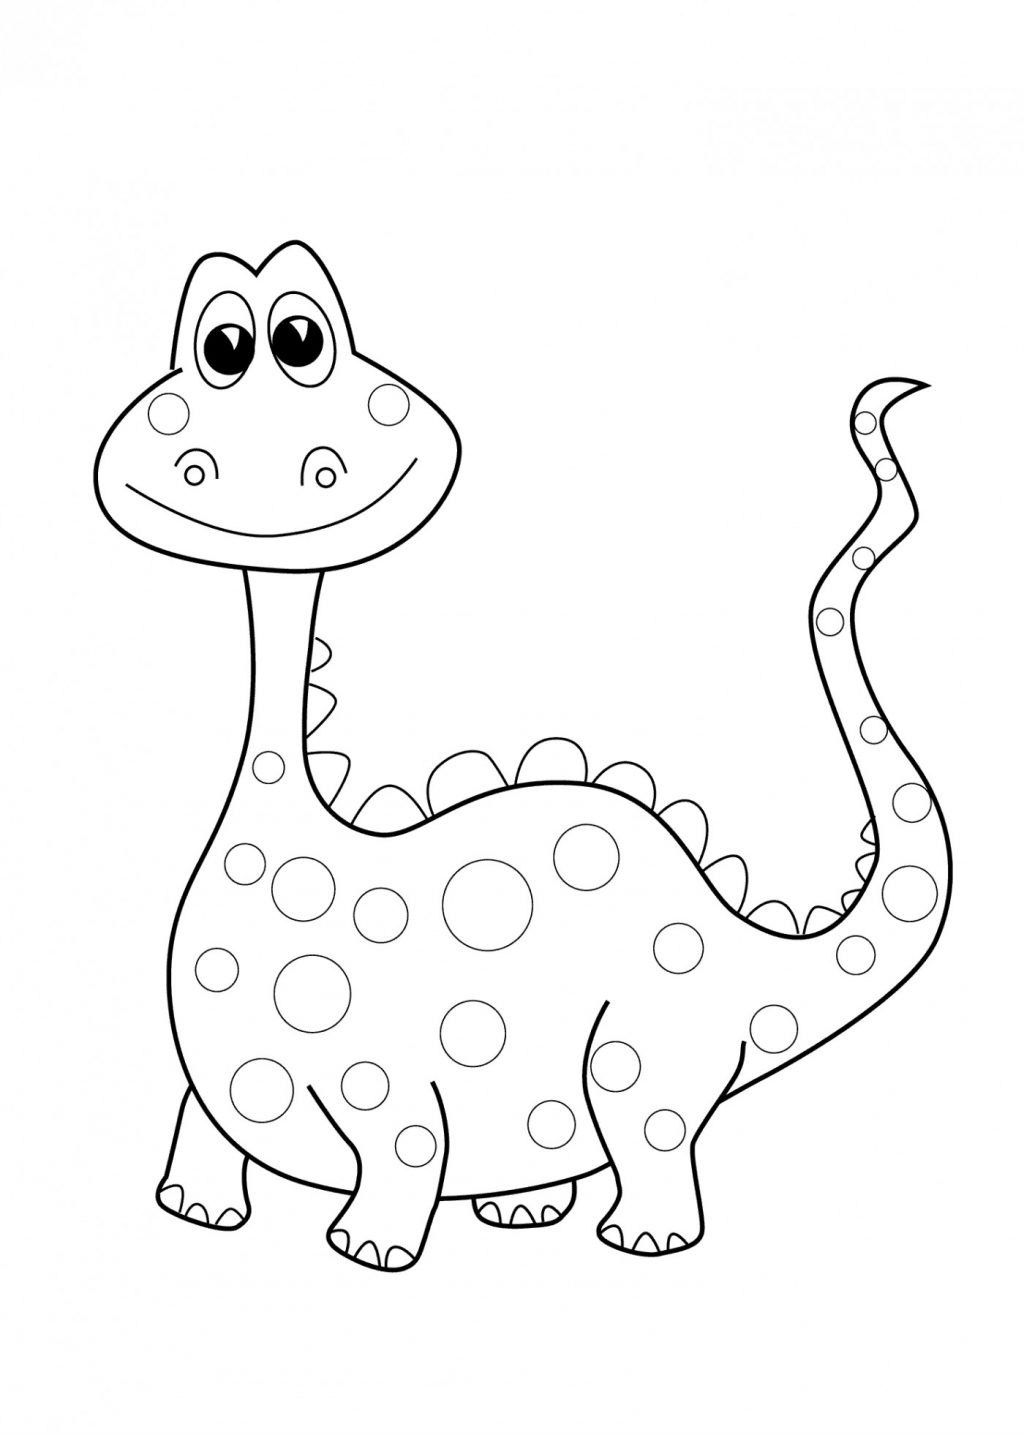 Free Preschool Coloring Pages Coloring Page Coloring Page Dinosaur Pages Preschool Depetta Free Davemelillo Com Dinosaur Coloring Sheets Preschool Coloring Pages Dinosaur Coloring Pages